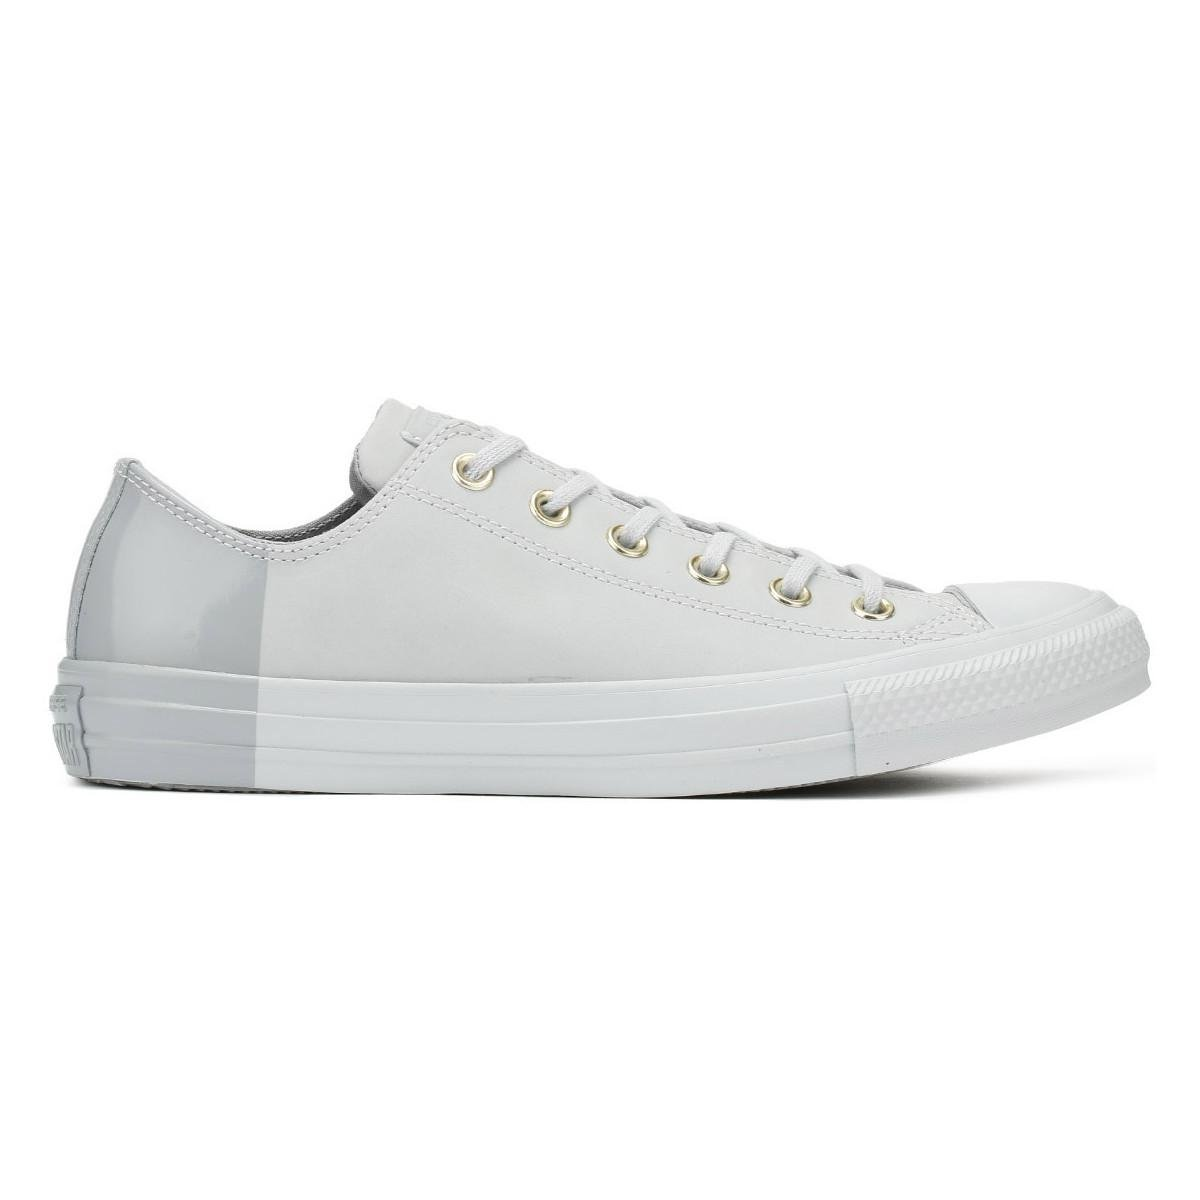 8daab04c1d38 Converse - Gray Chuck Taylor All Star Womens Pure Platinum Ox Trainers  Women s Shoes (trainers. View fullscreen